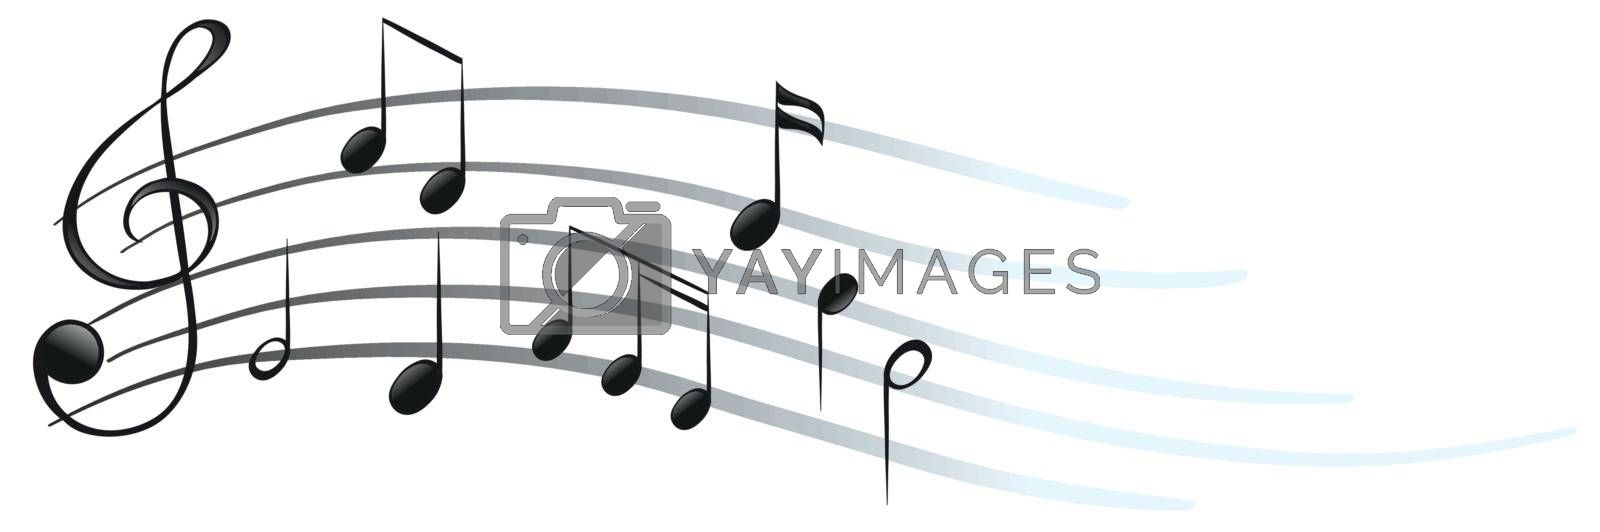 Royalty free image of Musical notes and symbols by iimages